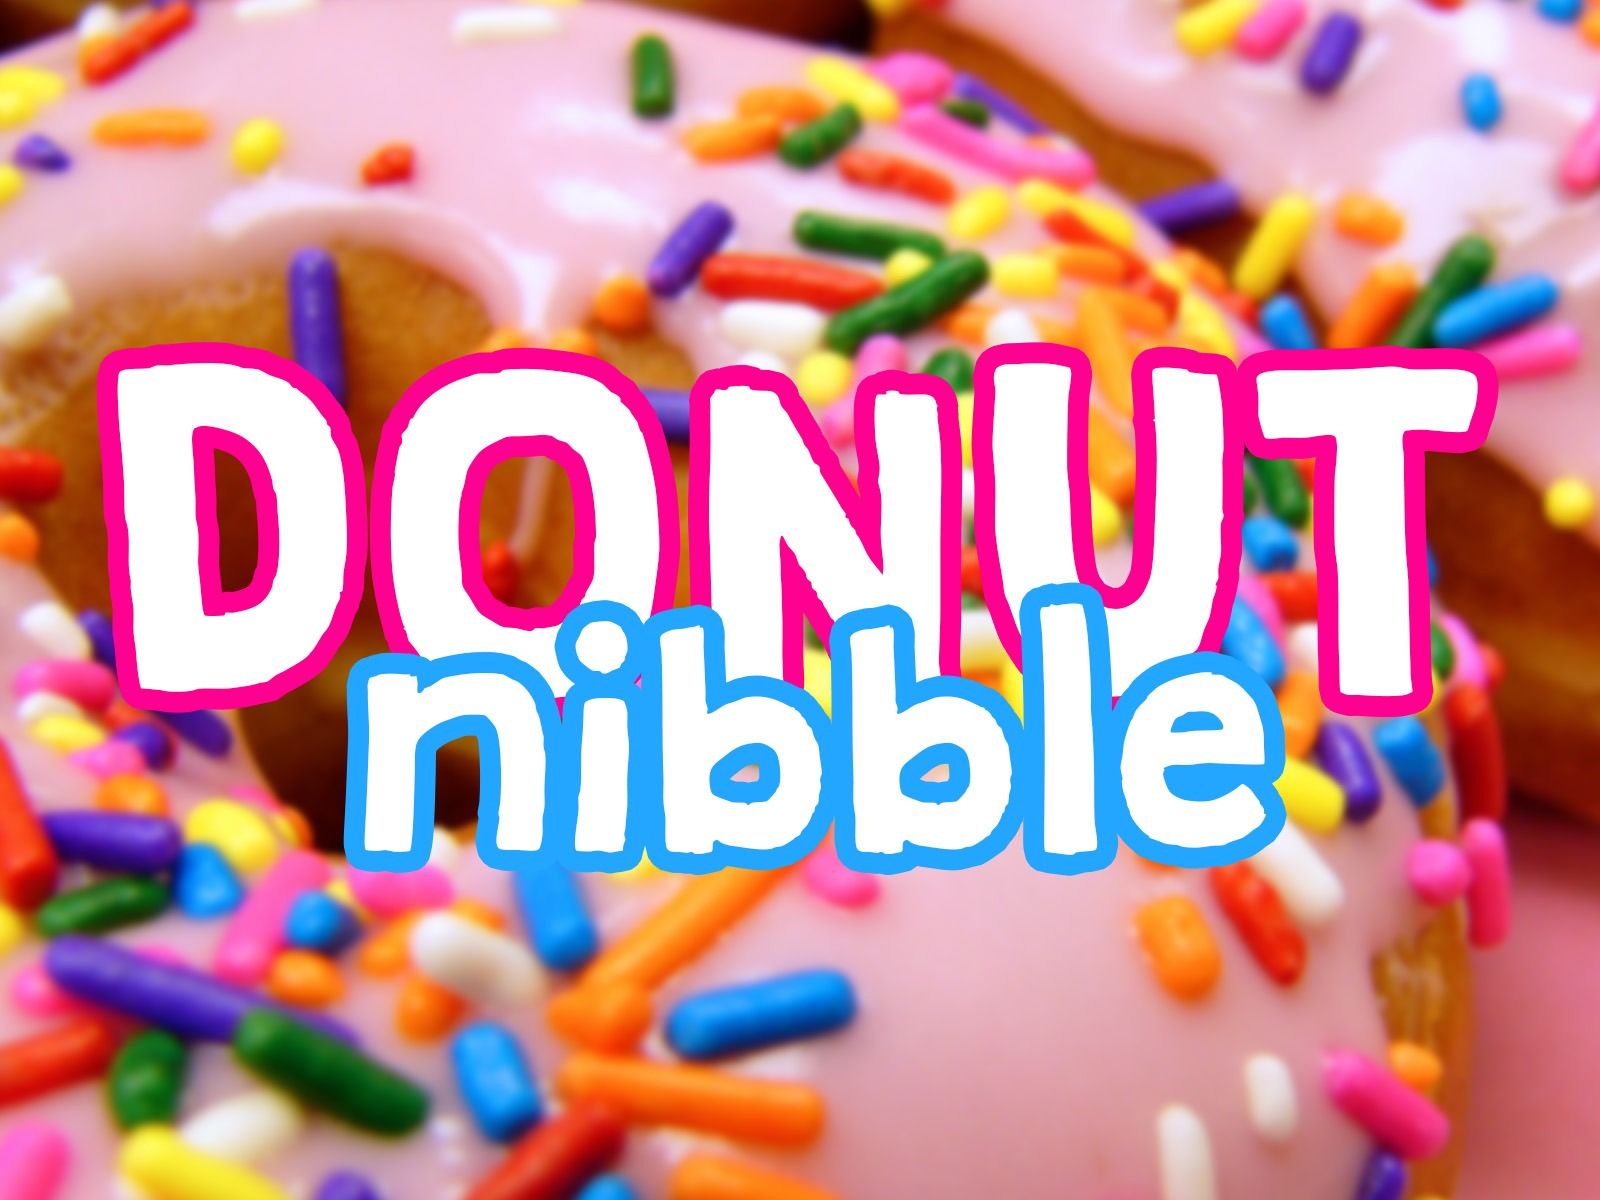 Donut Nibble